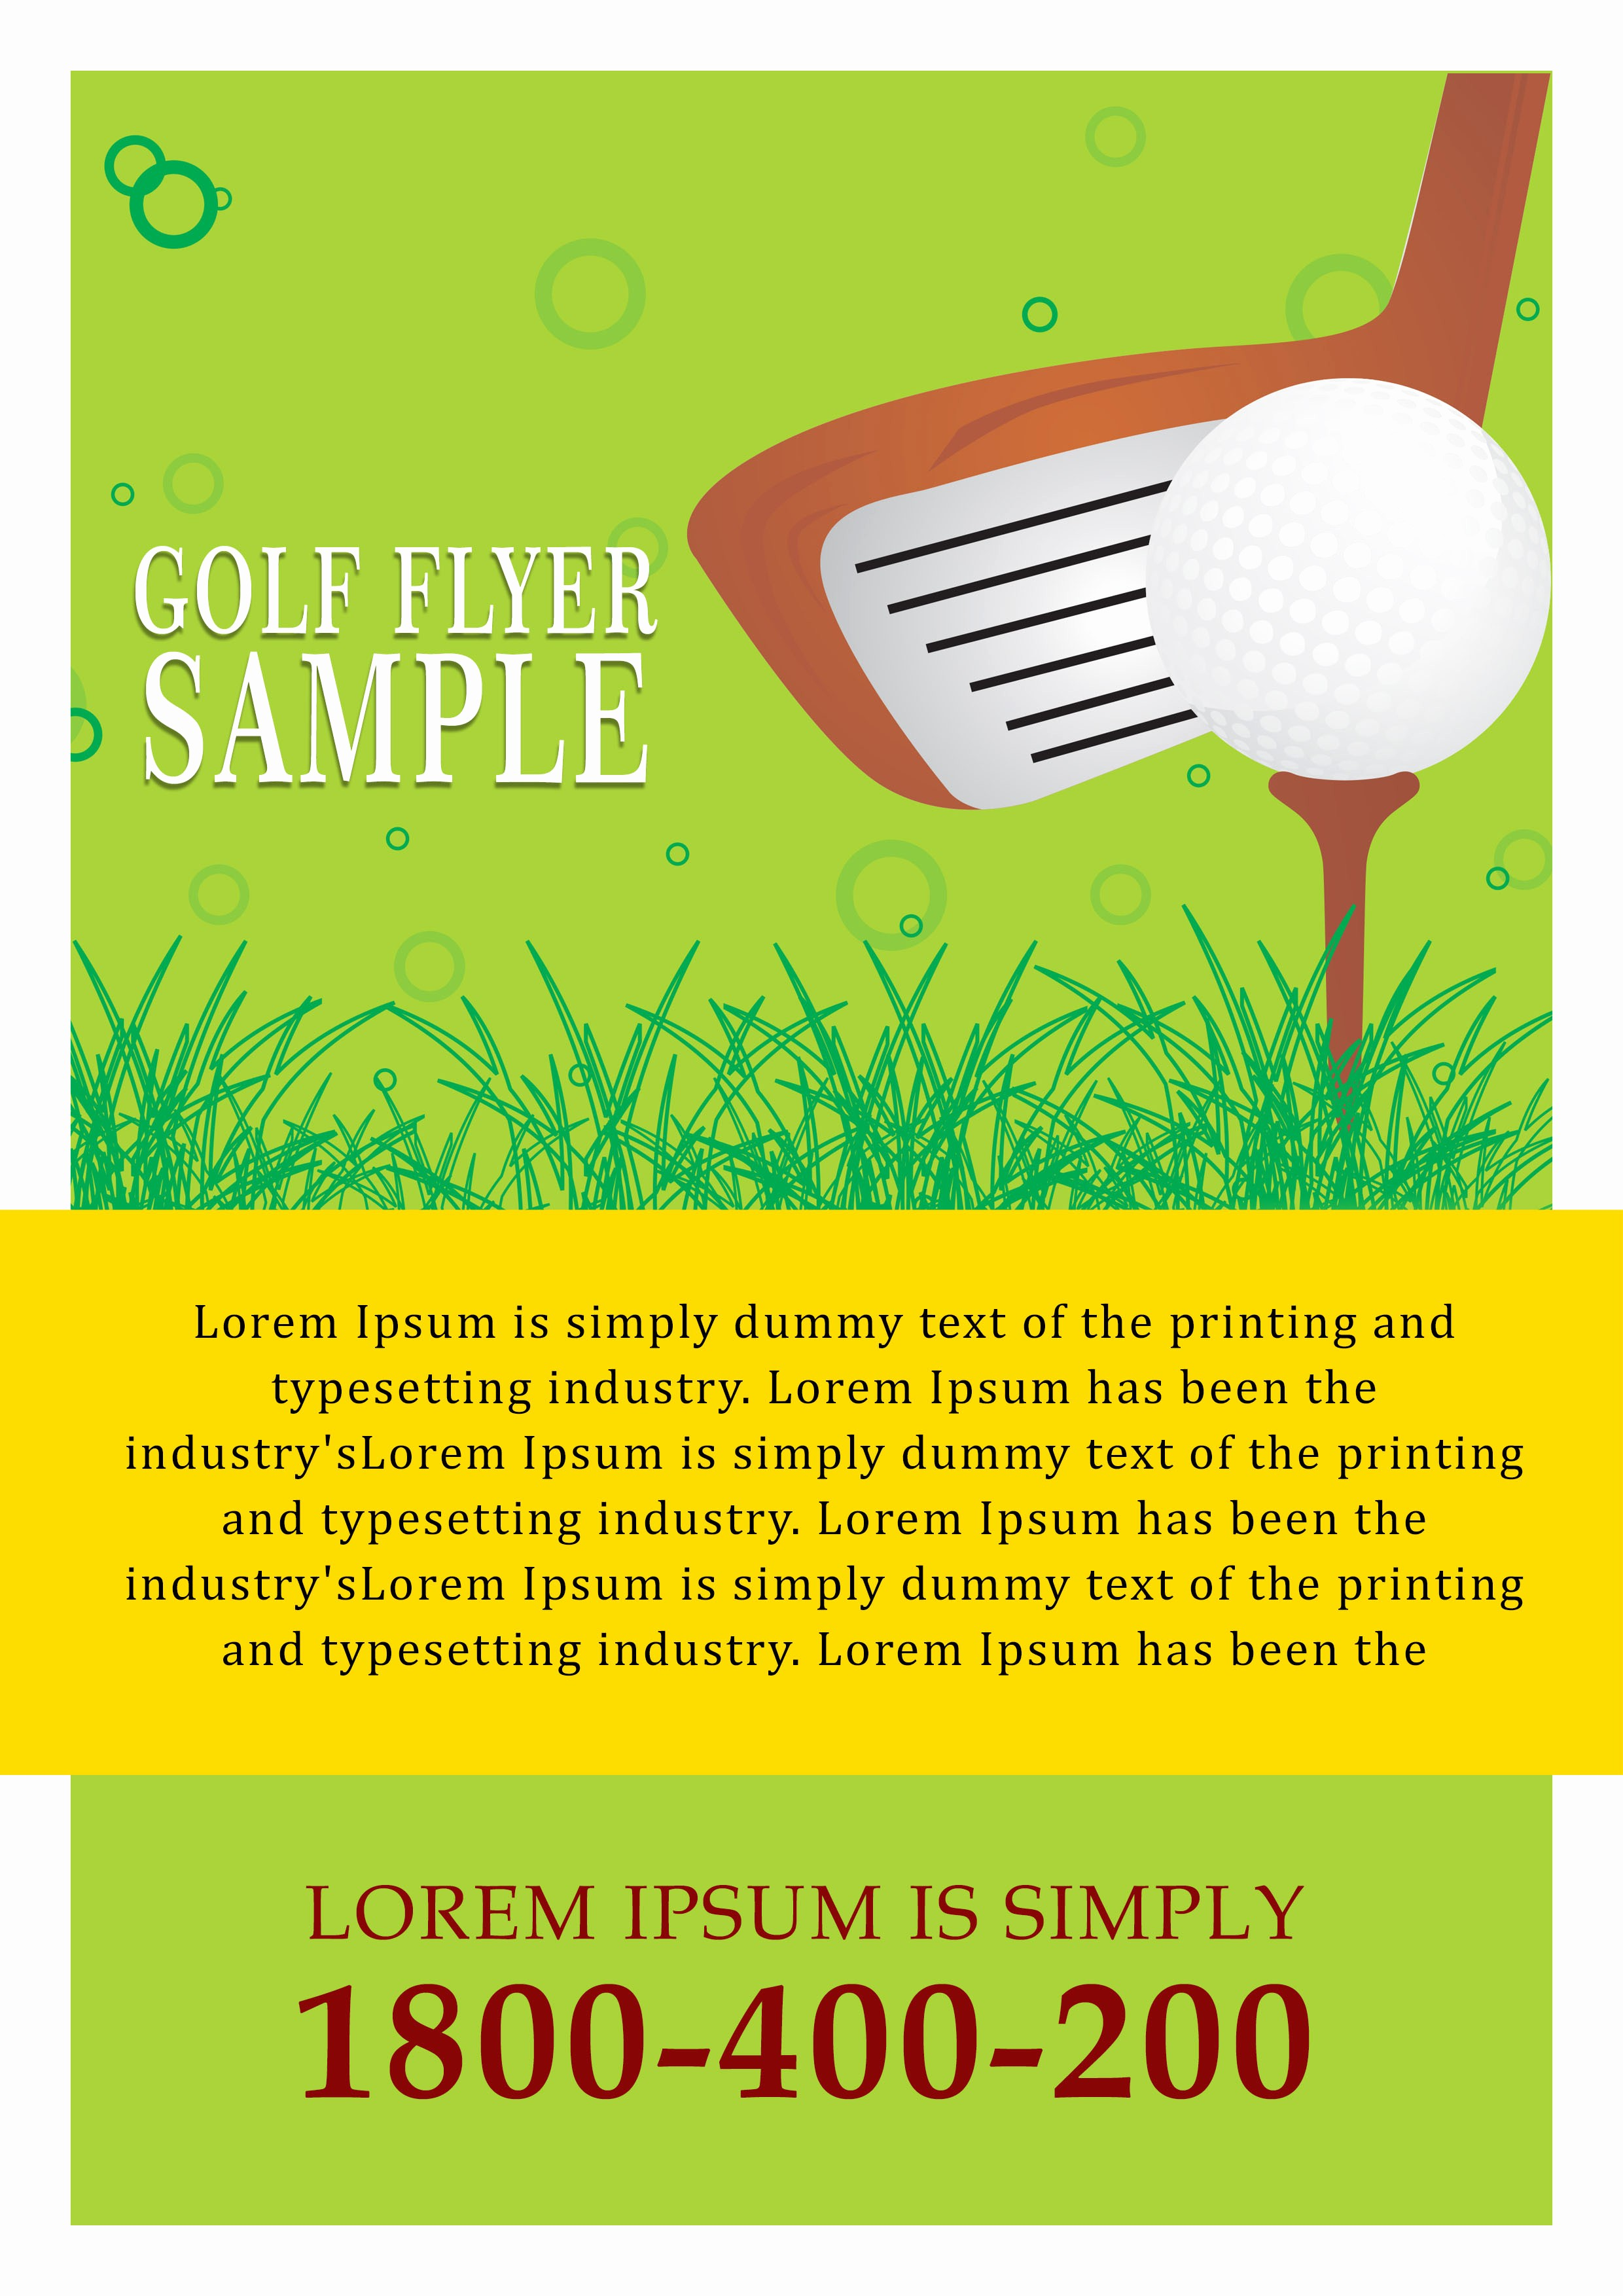 Flyers for Fundraisers Template Free Lovely 15 Free Golf tournament Flyer Templates Fundraiser